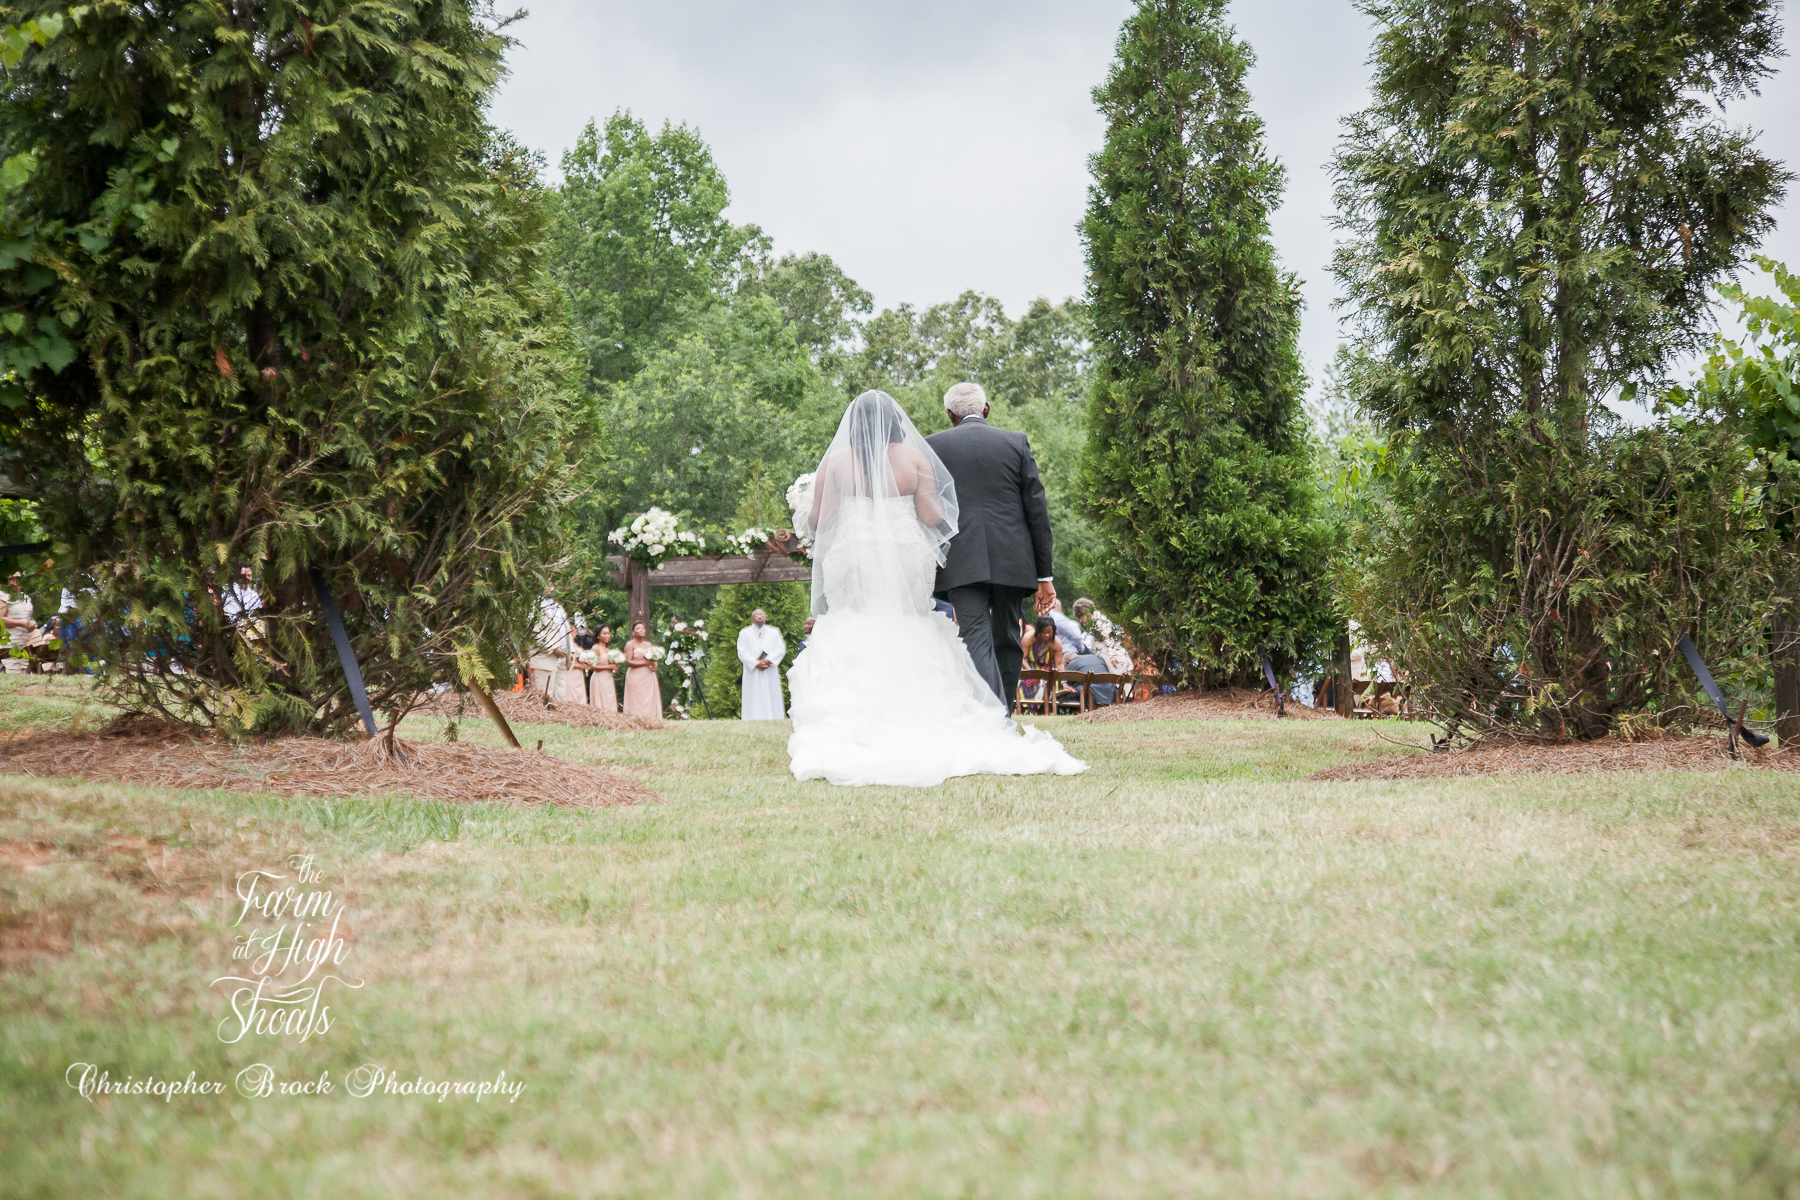 The Farm at High Shoals -- Atlanta Vineyard Wedding Venue (157 of 676)